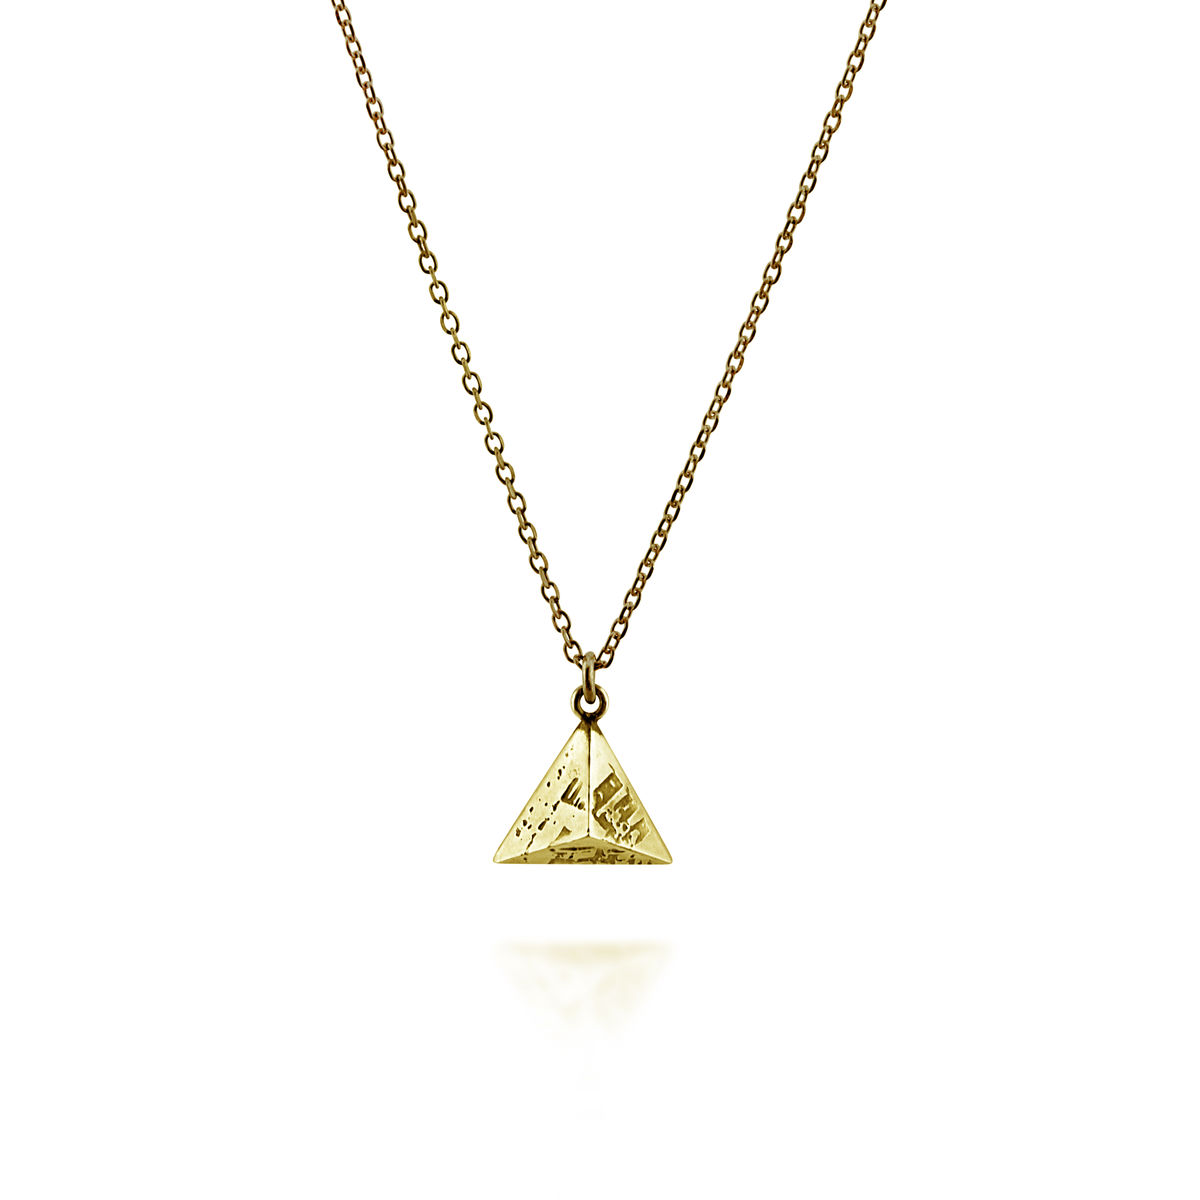 Mini SOUVENIR Pyramid Pendant - gold plated silver - product image